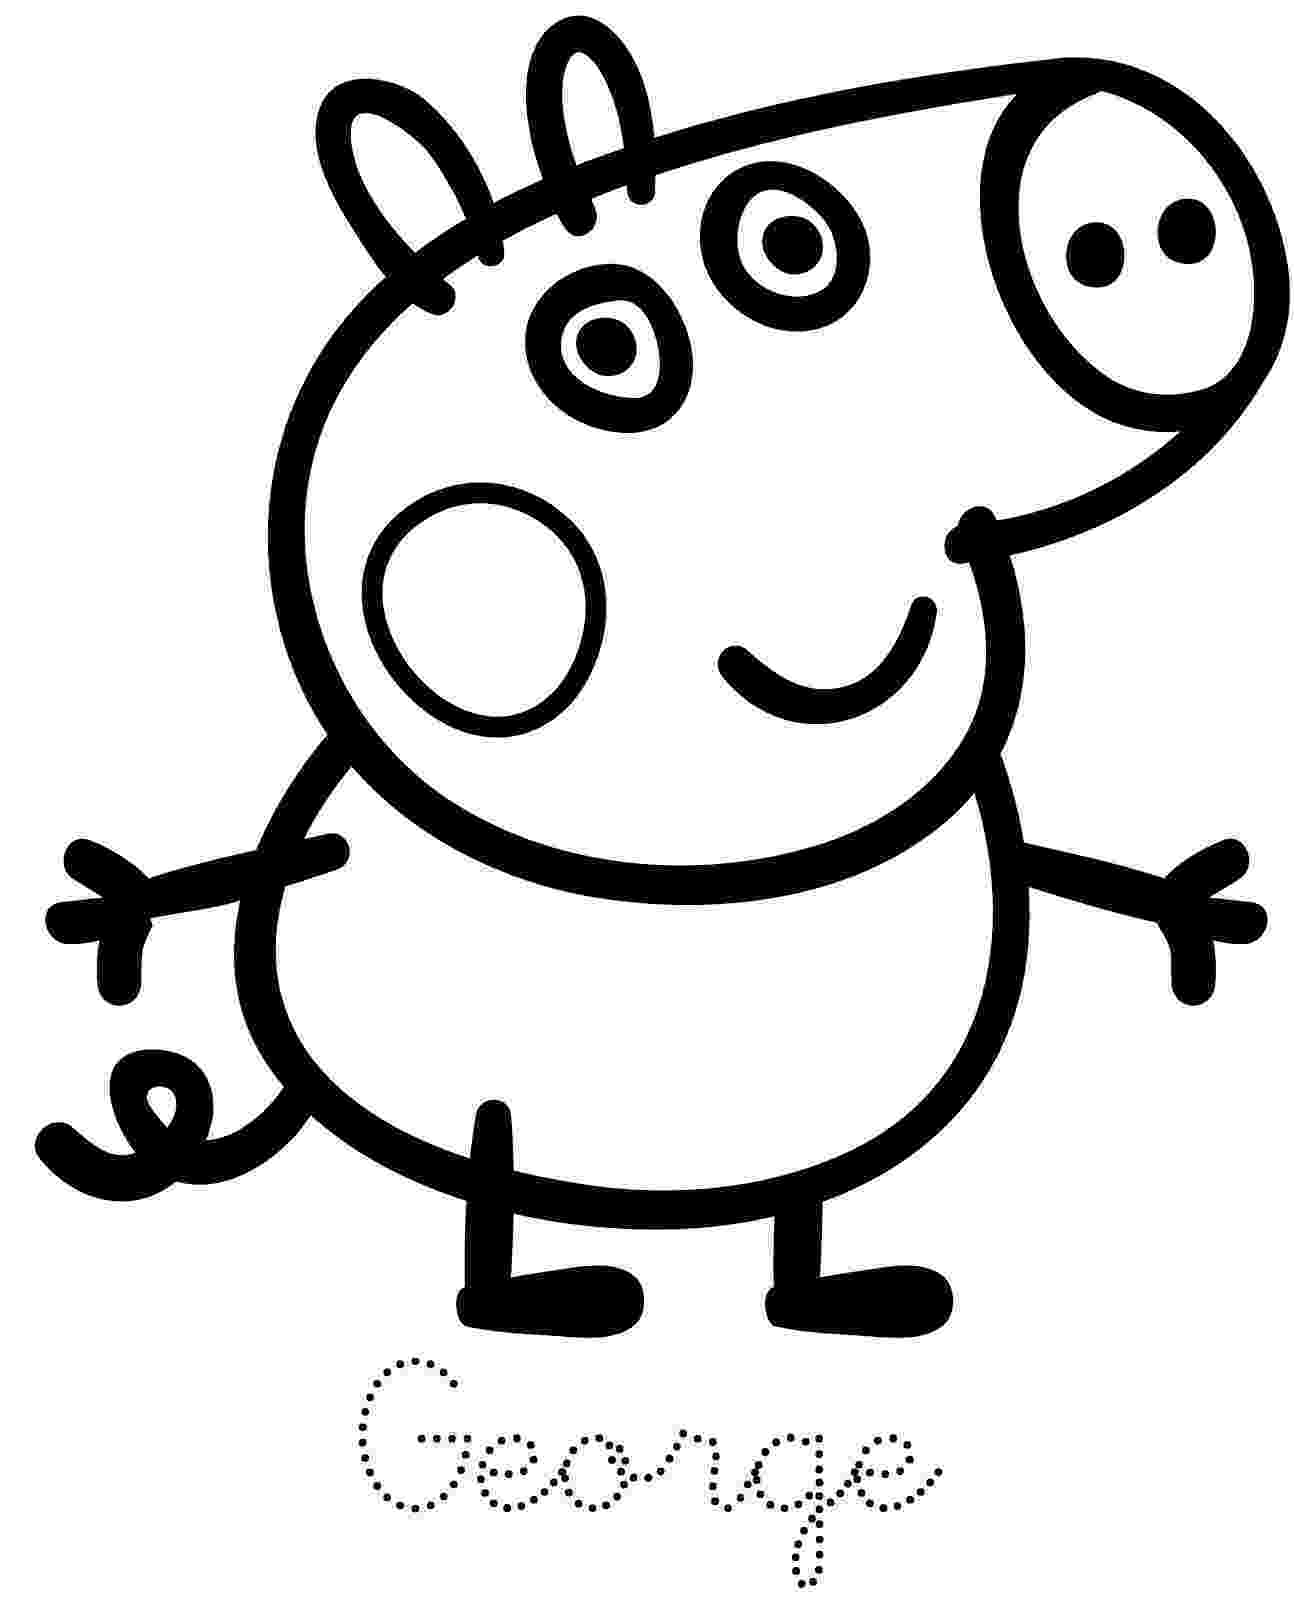 peppa pig colouring pictures to print peppa pig coloring pages peppa pig coloring pages to print peppa pictures colouring pig